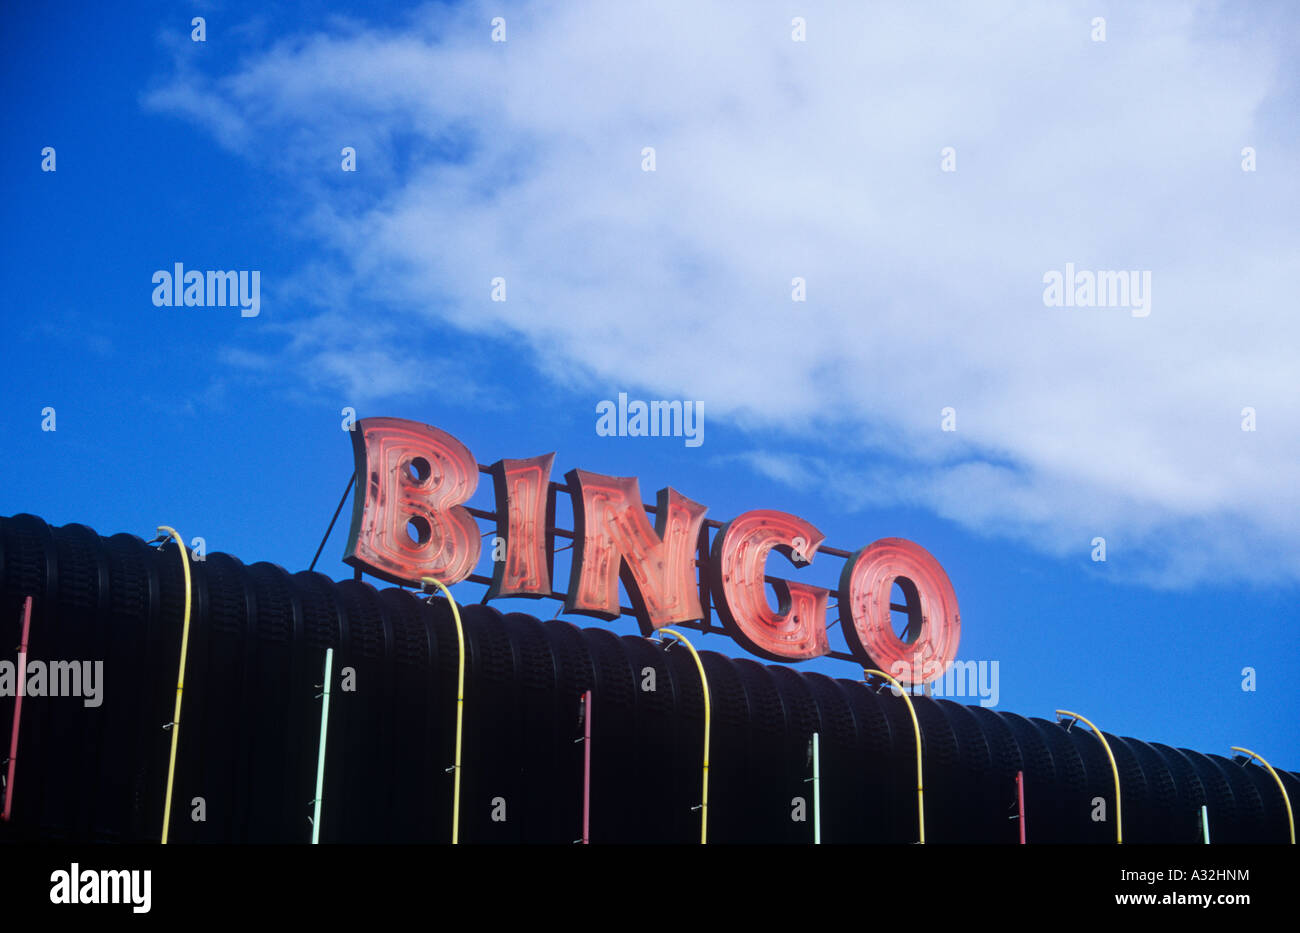 Red neon sign stating bingo on black plastic roof with coloured red neon sign stating bingo on black plastic roof with coloured strip lights under blue sky with large white cumulus cloud mozeypictures Images